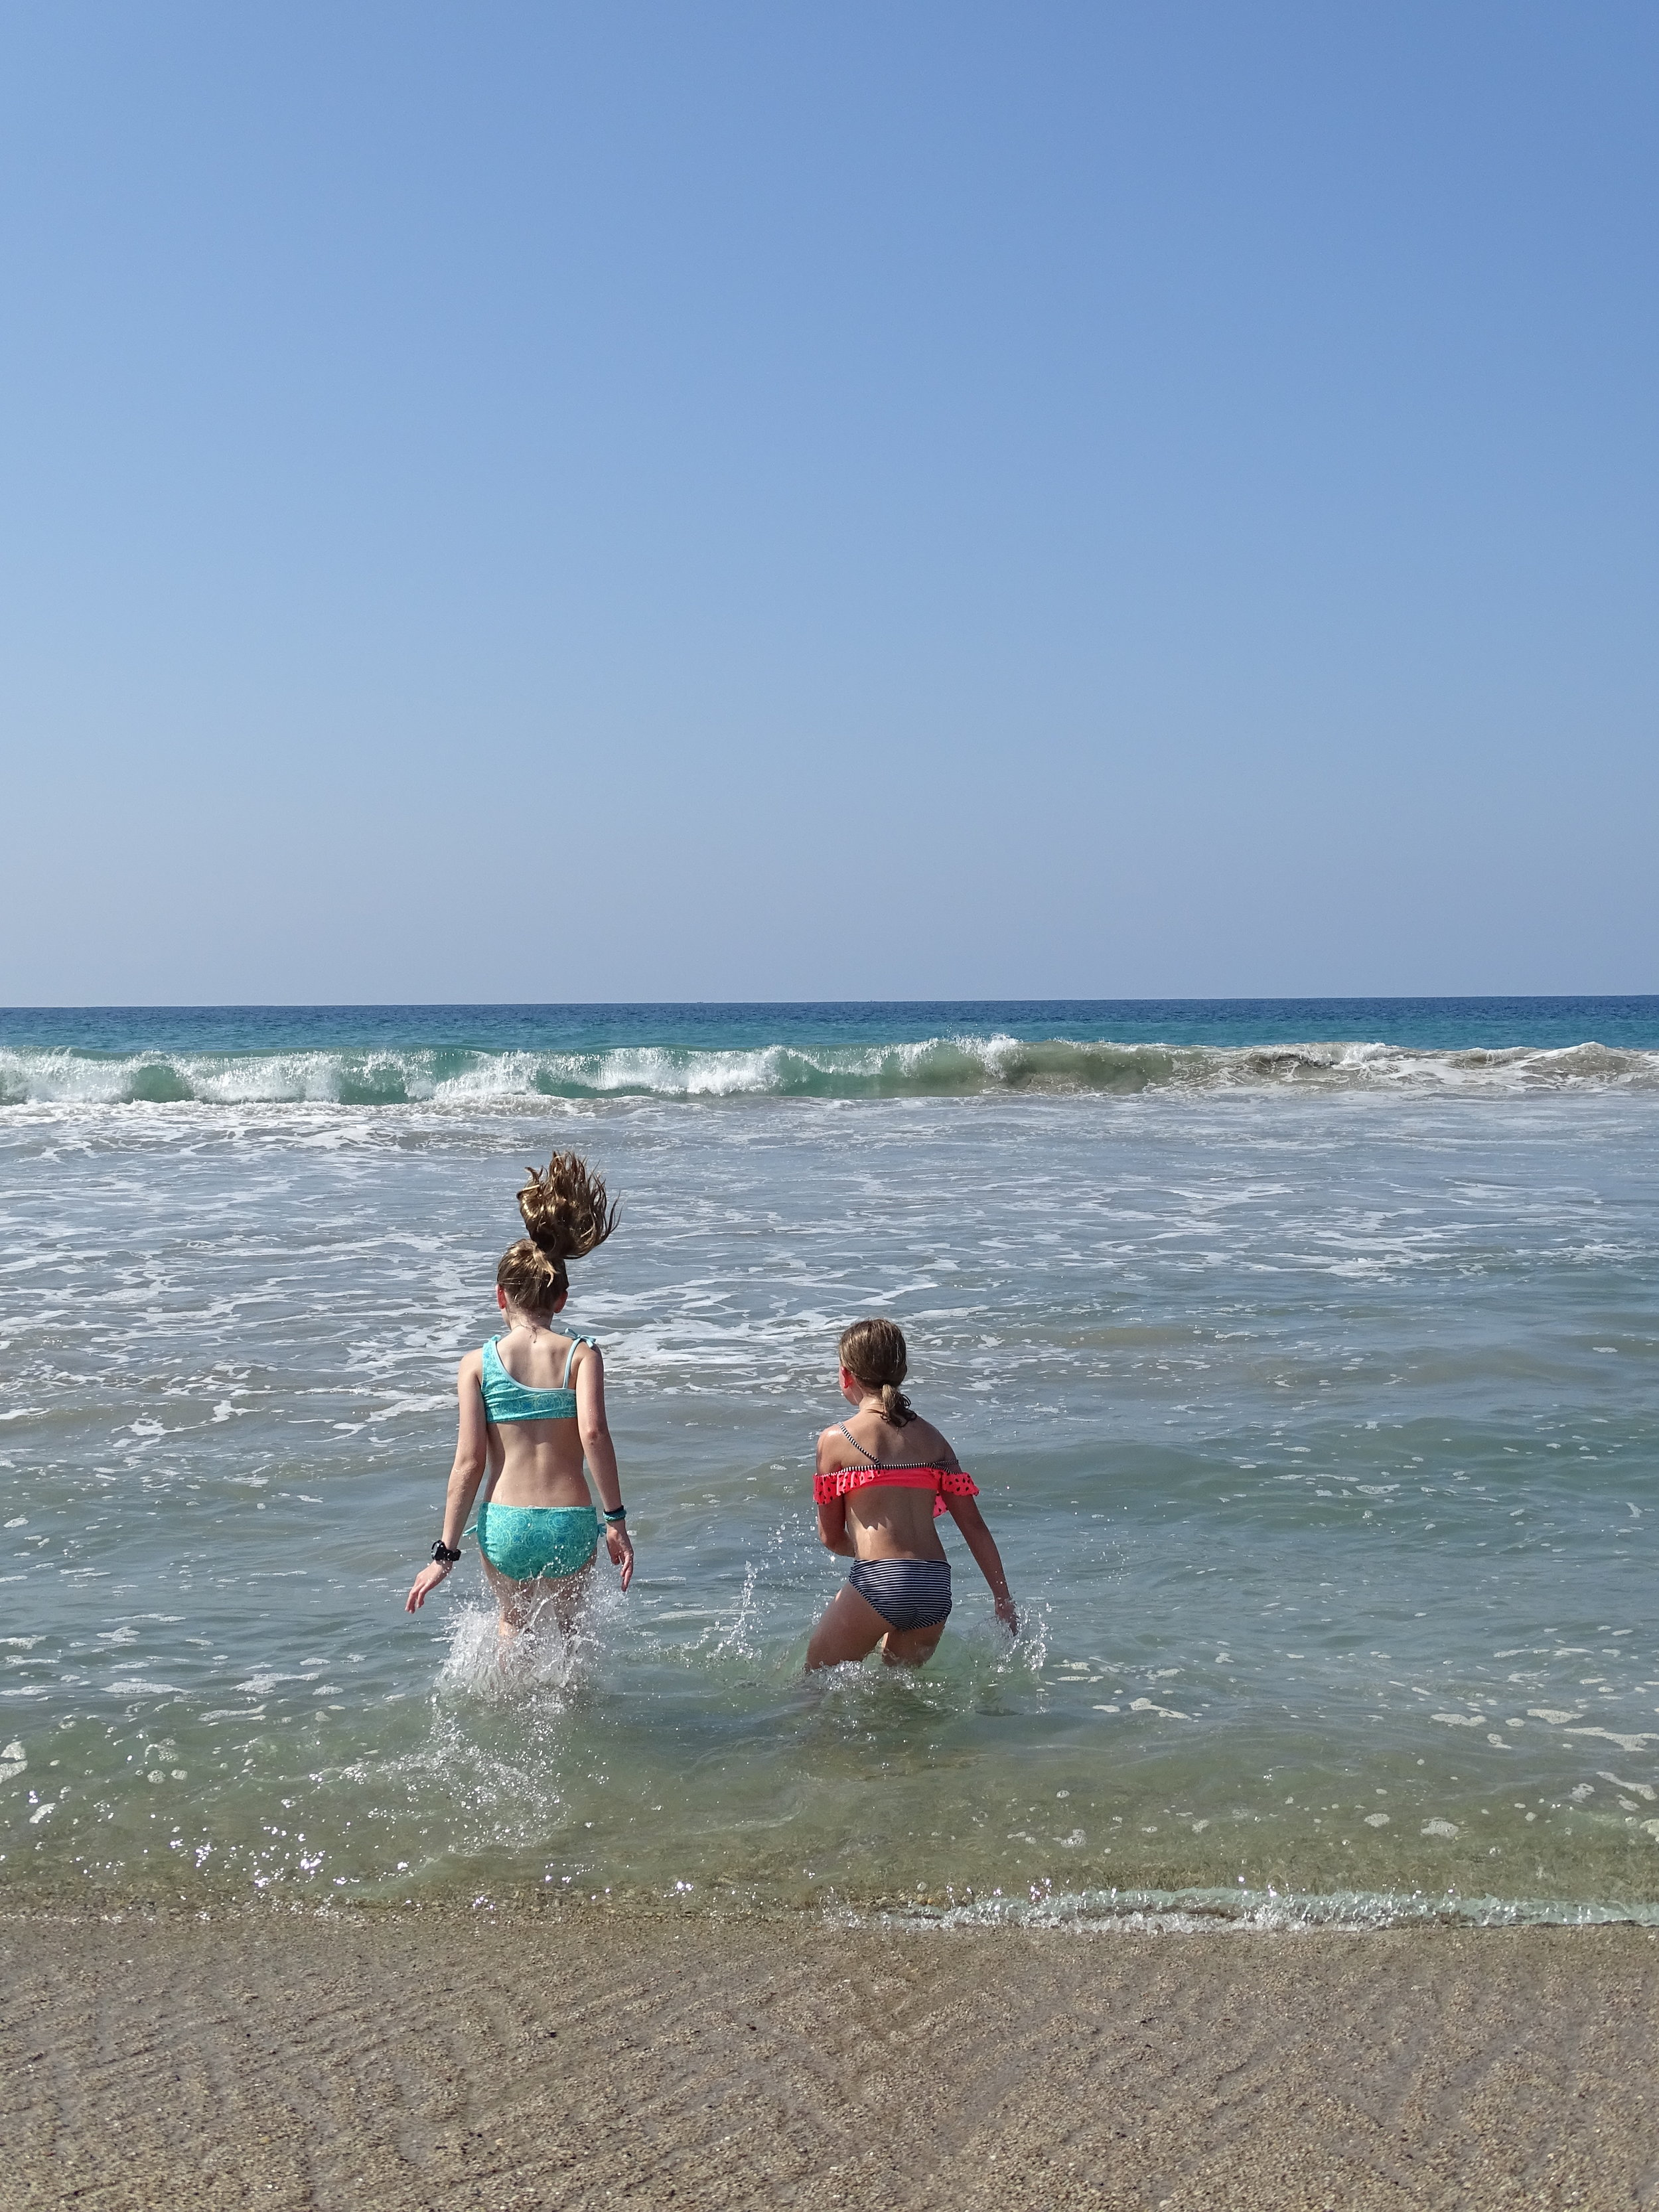 Ellie and Isla love to play in the waves and water